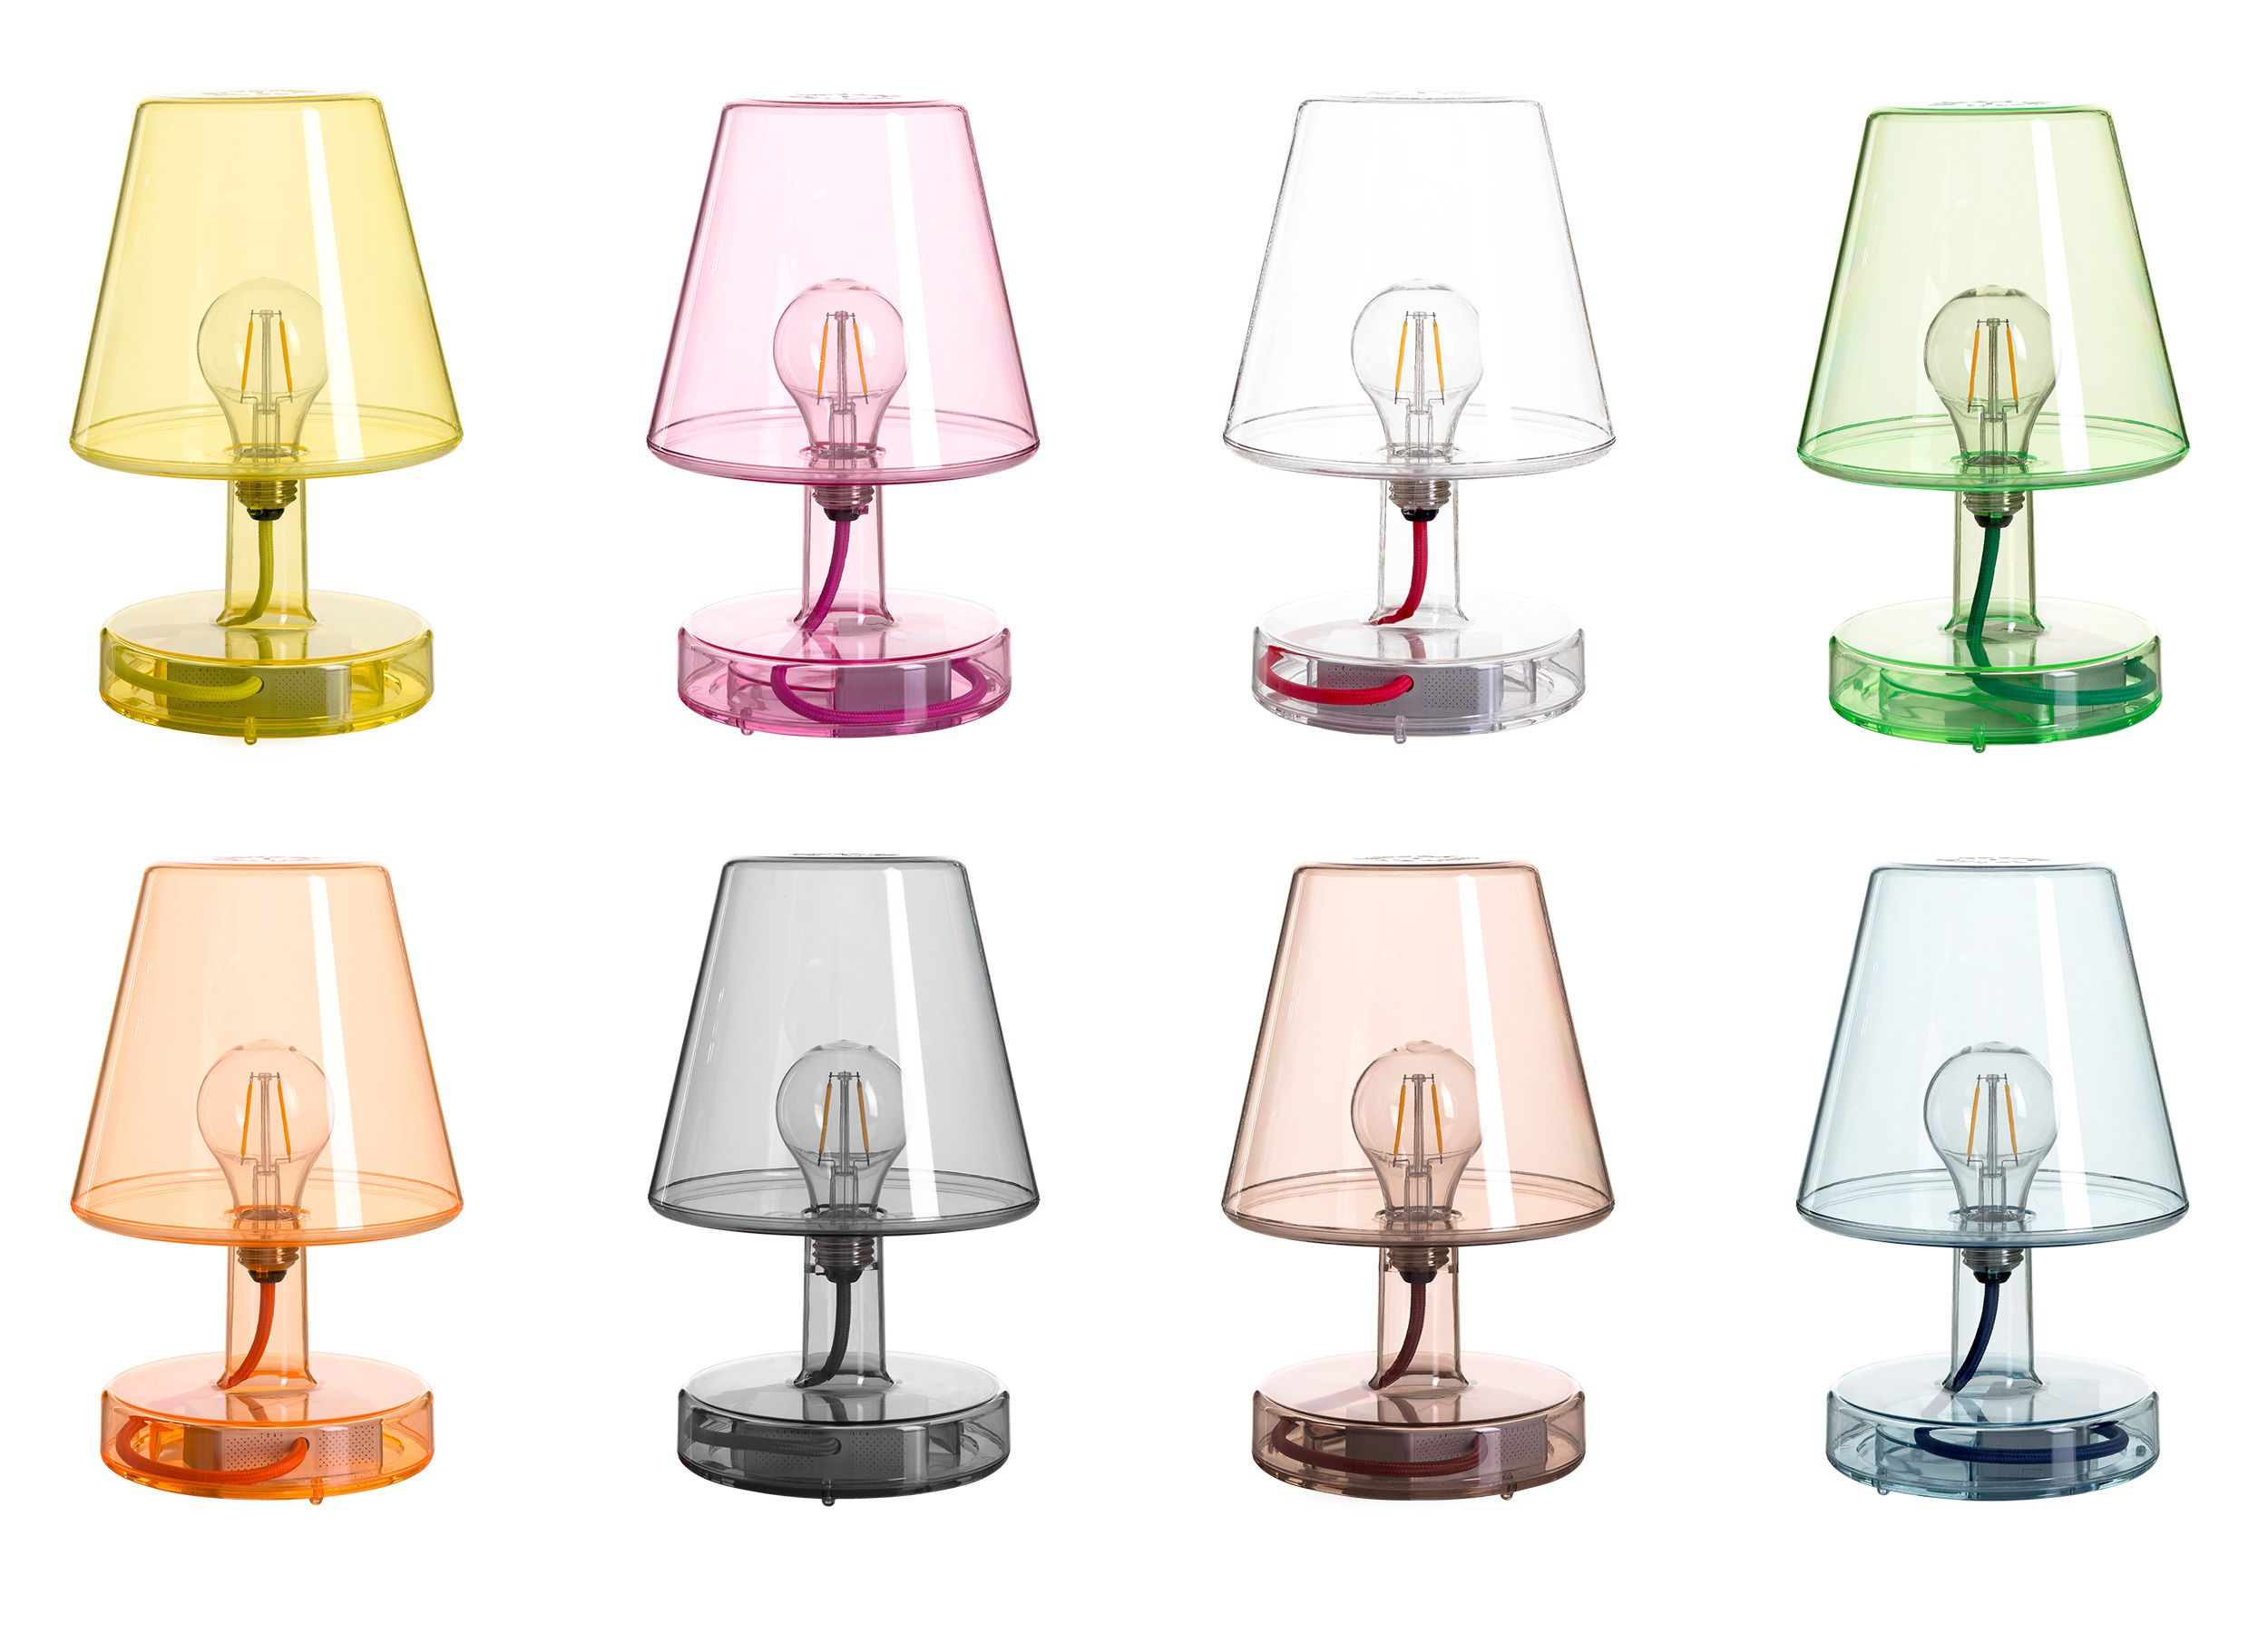 Fatboy Transloetje Colours Lamp Touch Lamp Retro Table Lamps